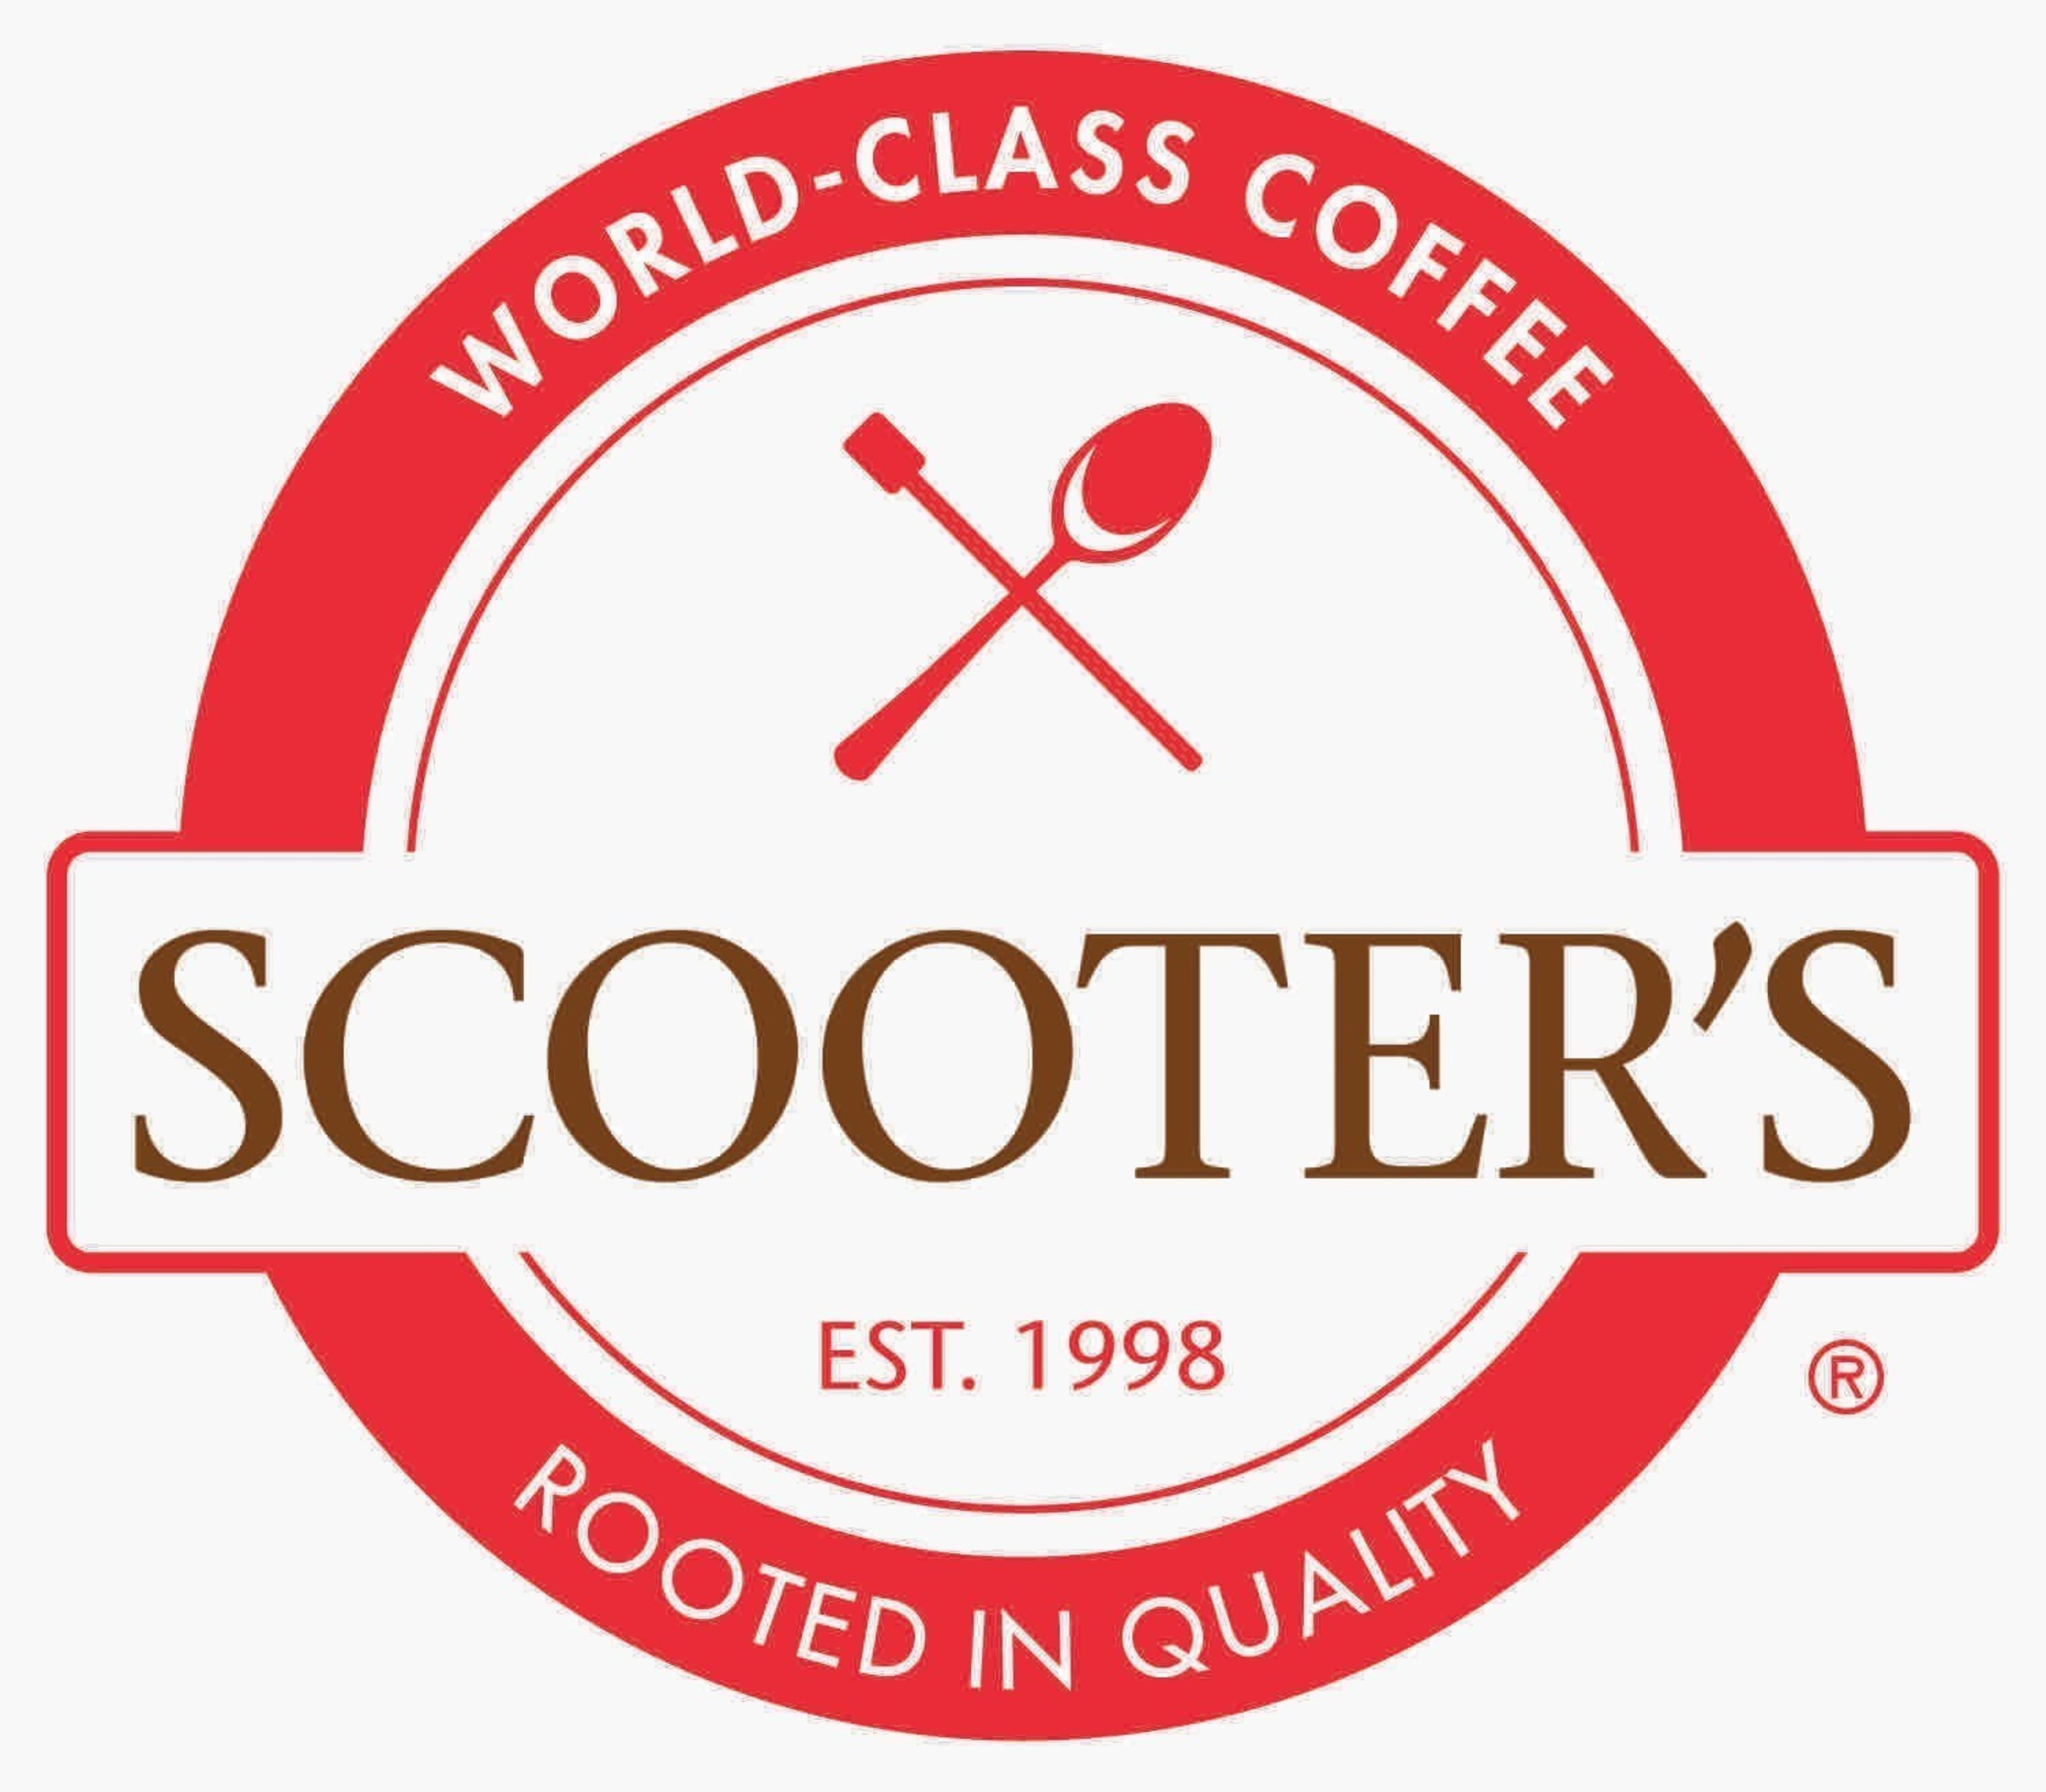 Scooter's Coffee, a franchise with more than 120 stores, continues to expand rapidly nationwide, with 40 ...